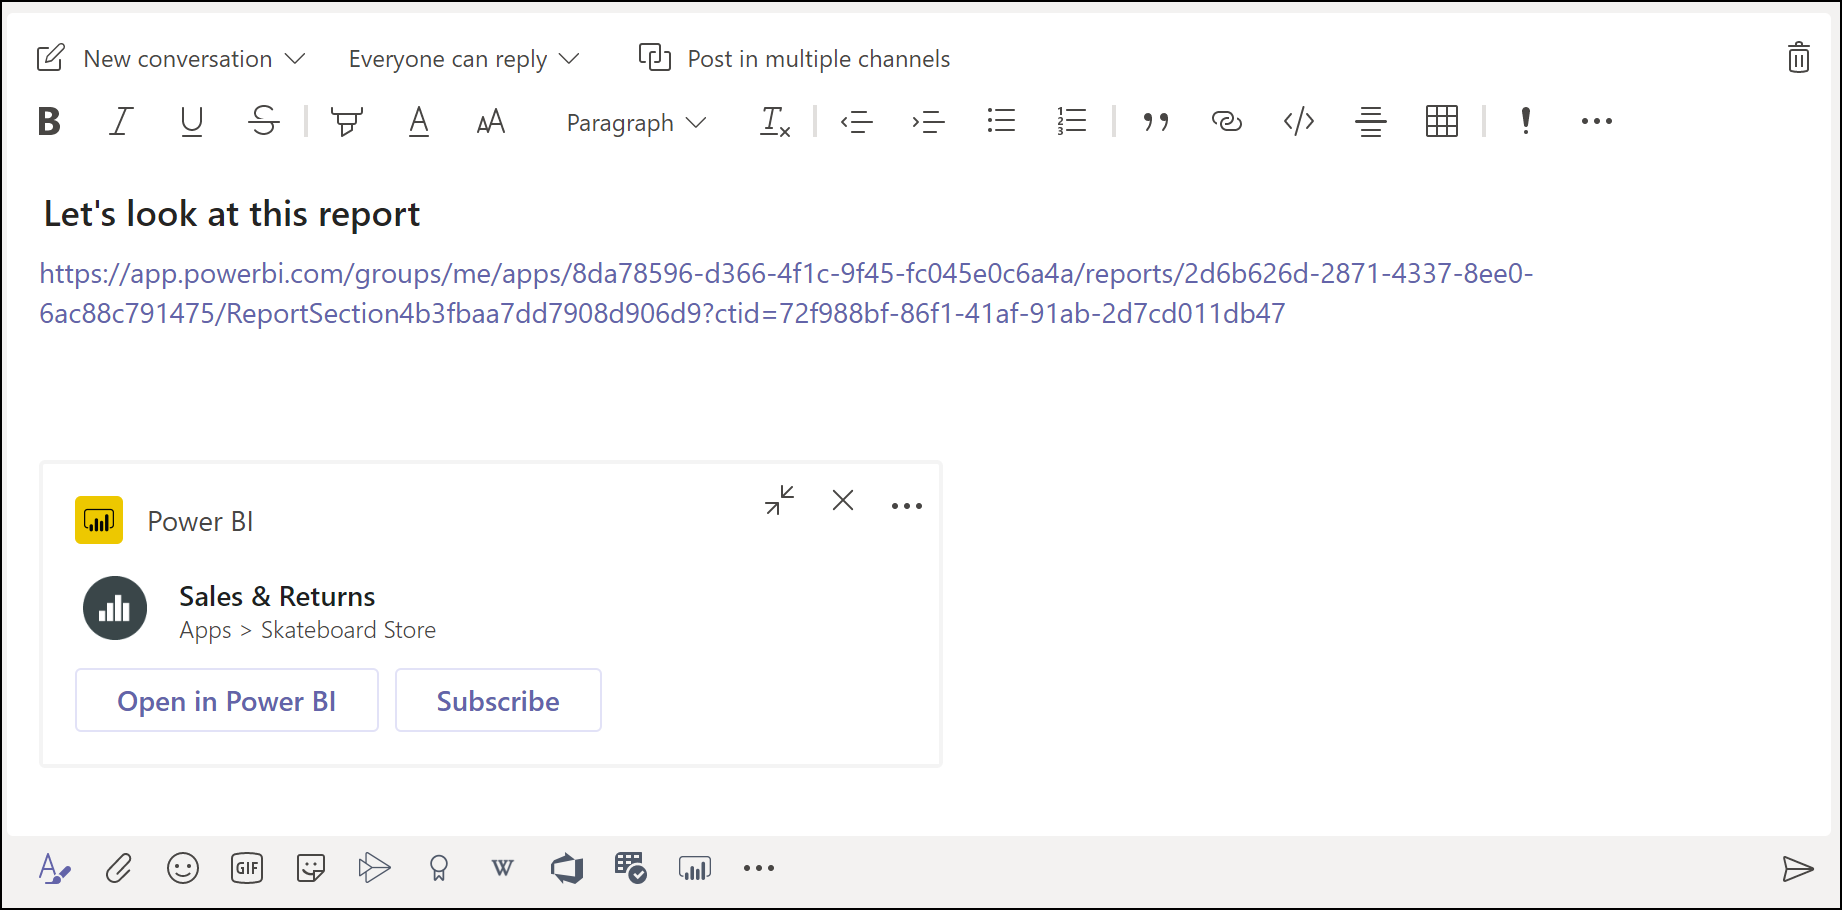 The Microsoft Teams message box is shown with a rich link preview for a Power BI report.